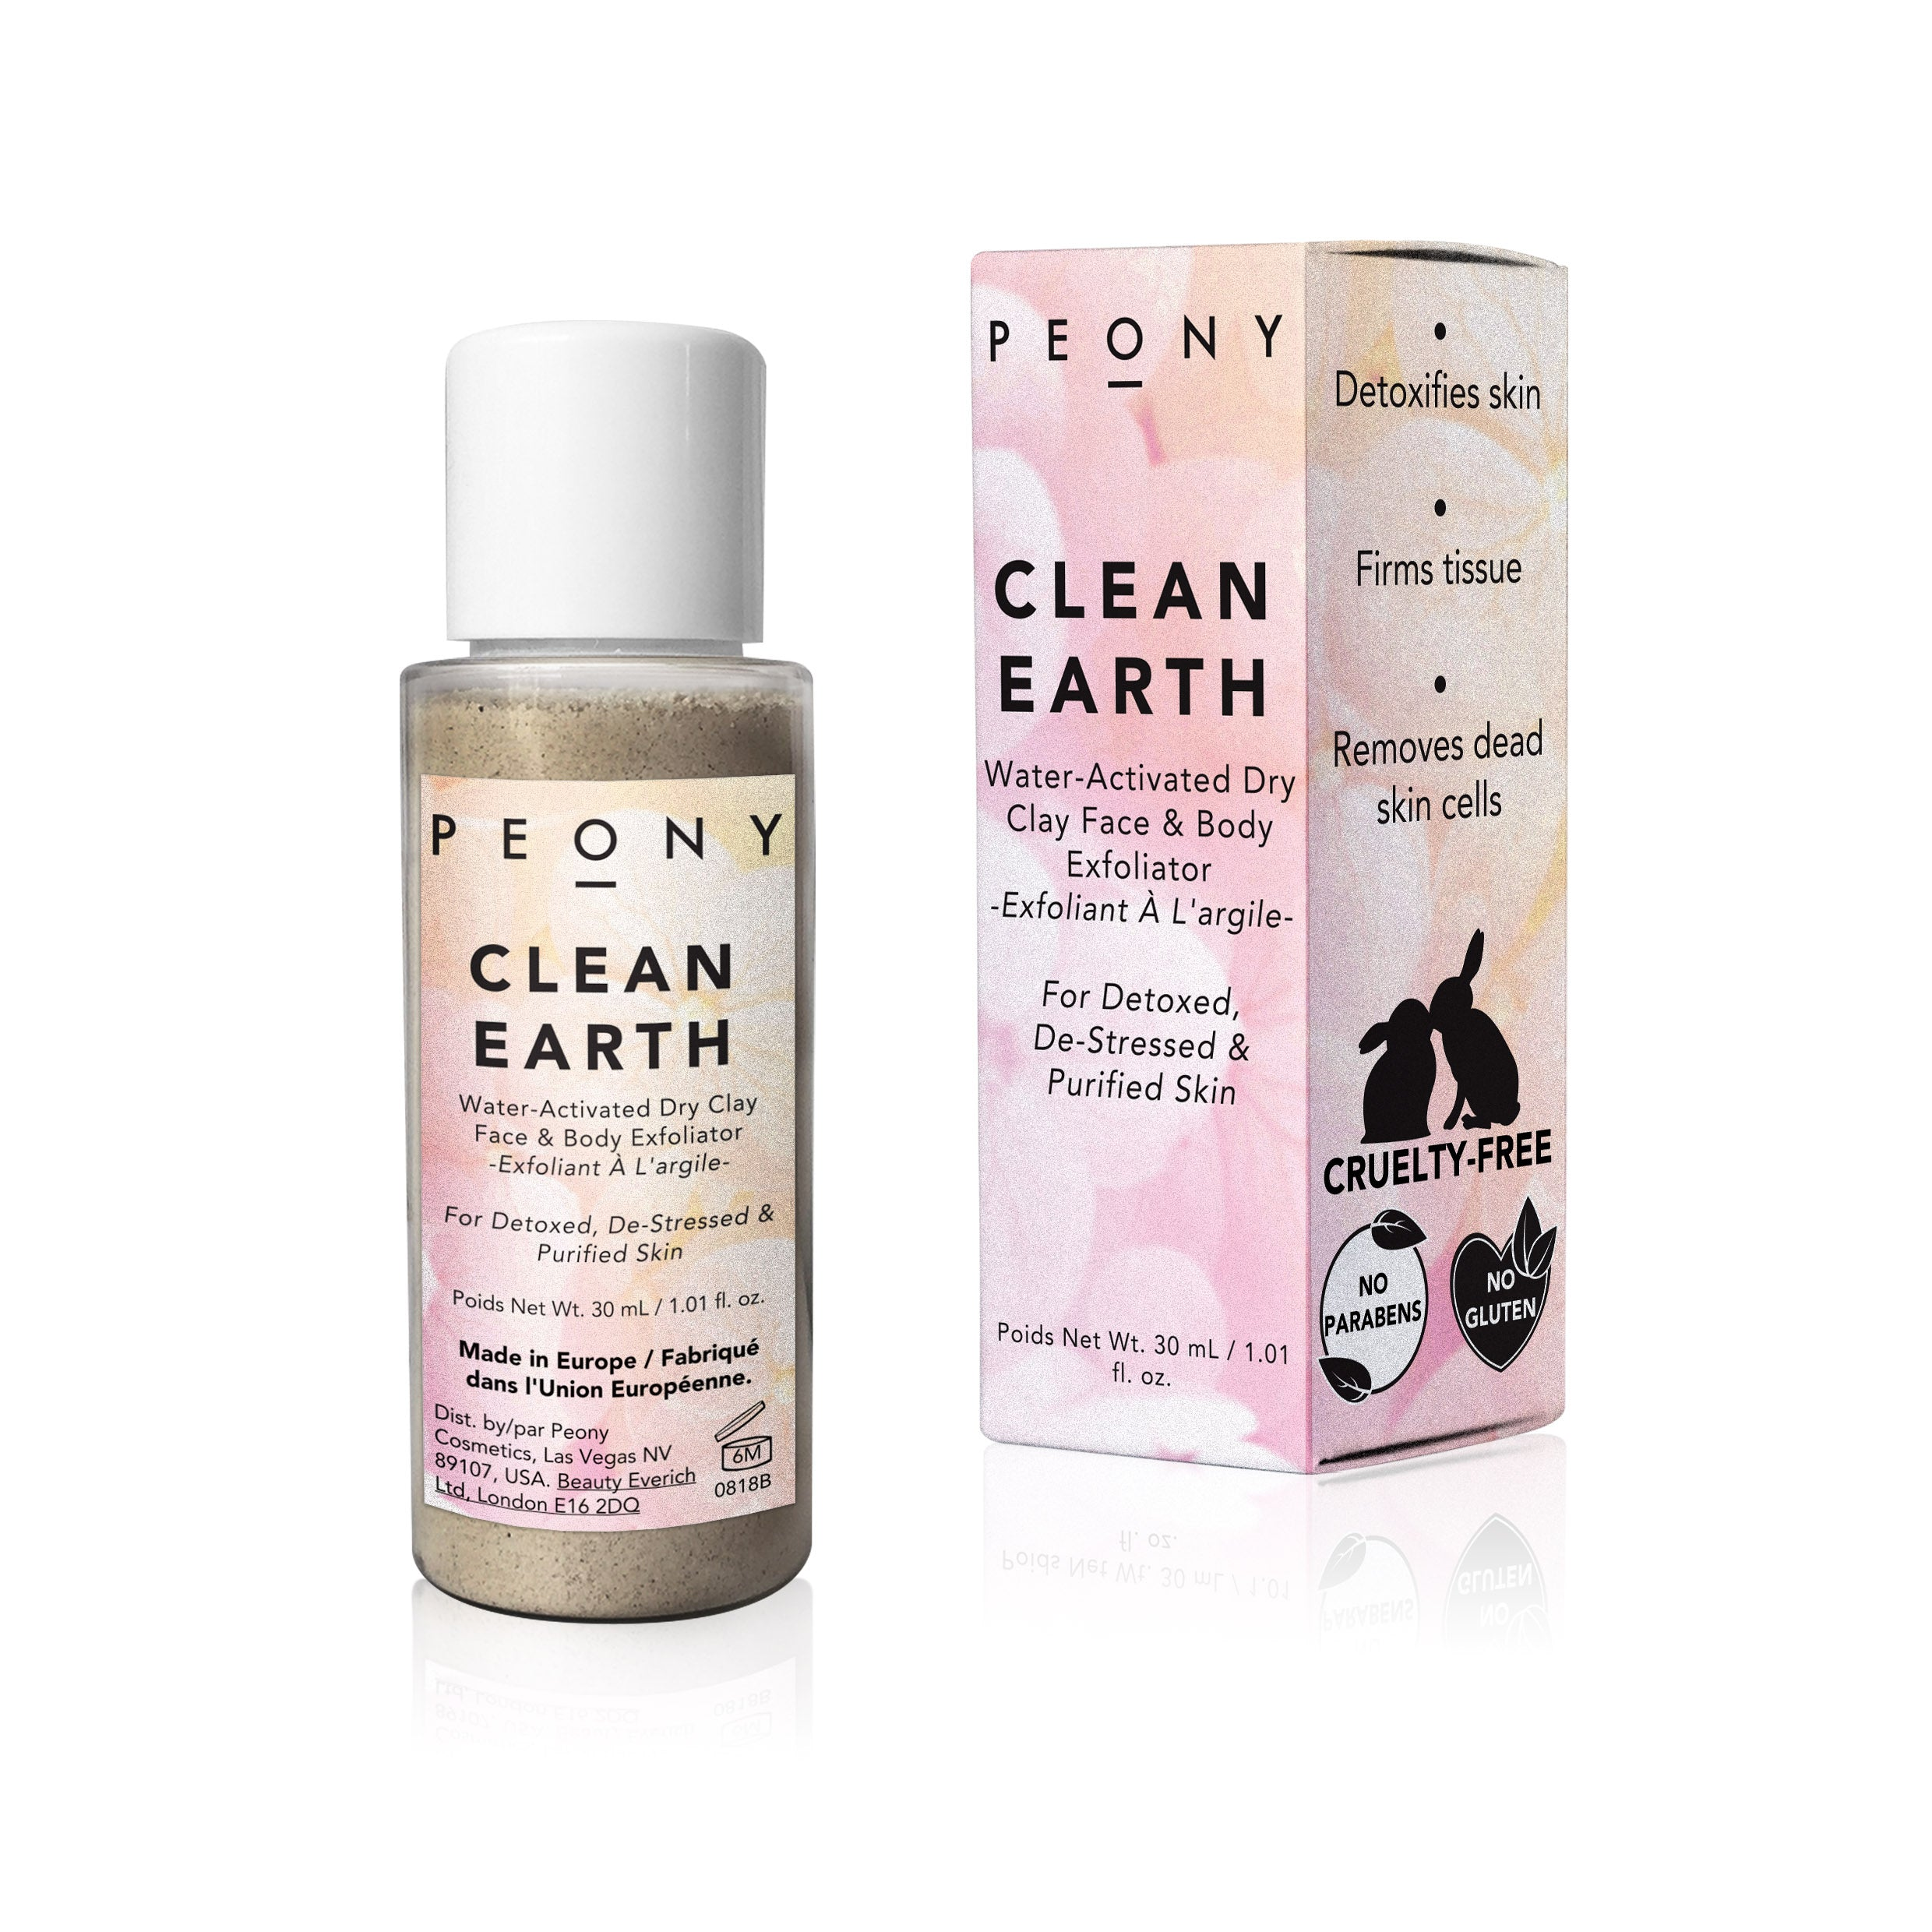 Clean Earth - Water-Activated Dry Clay Face & Body Exfoliator